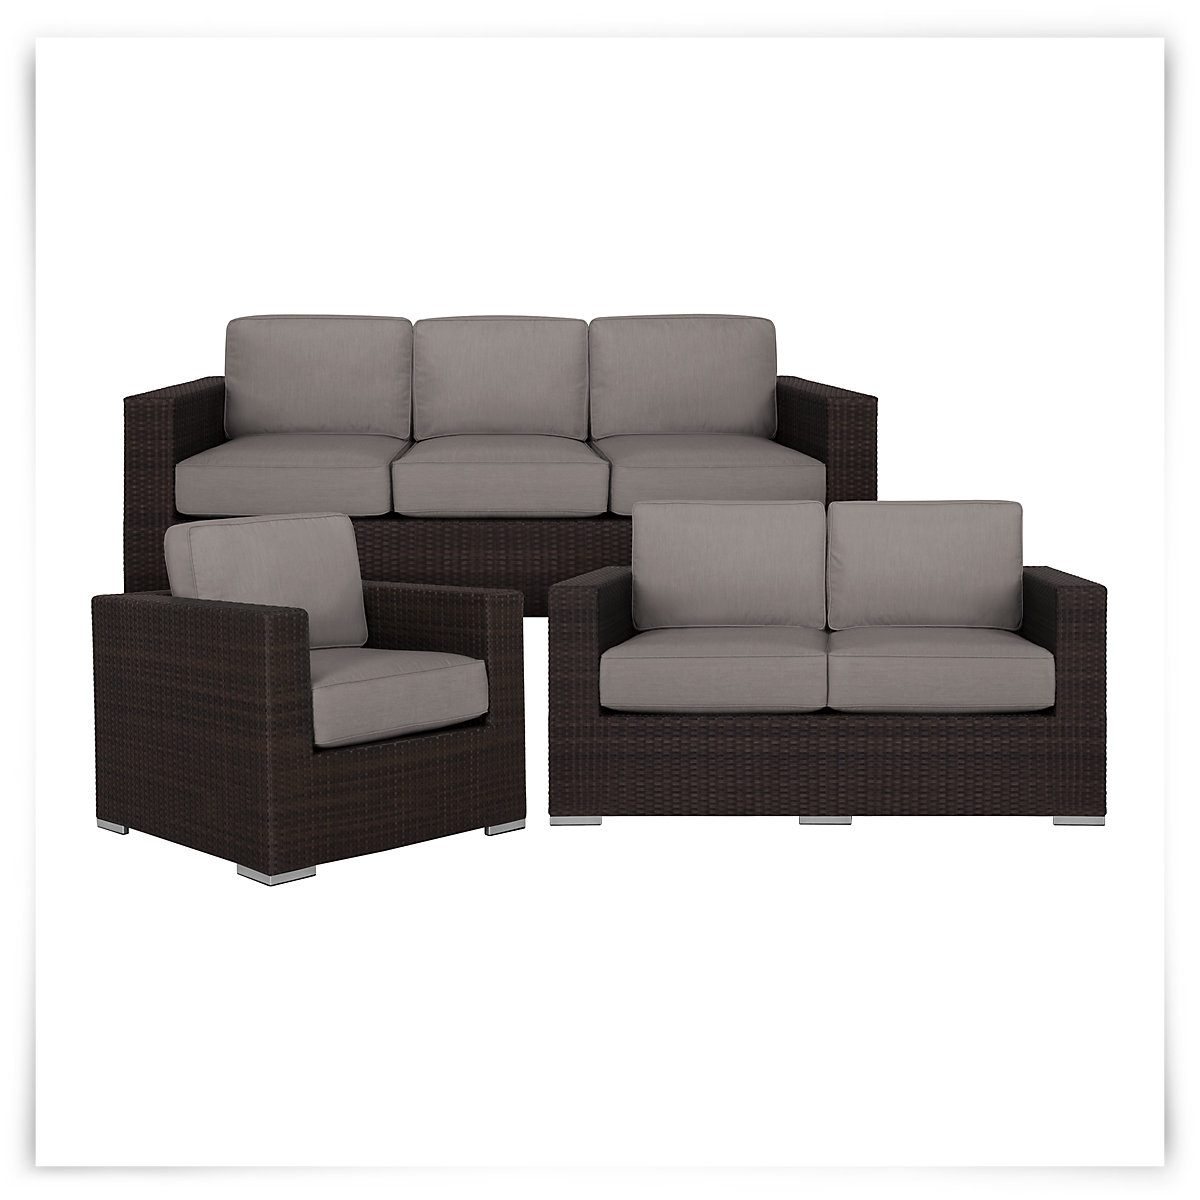 city furniture fina gray outdoor living room set